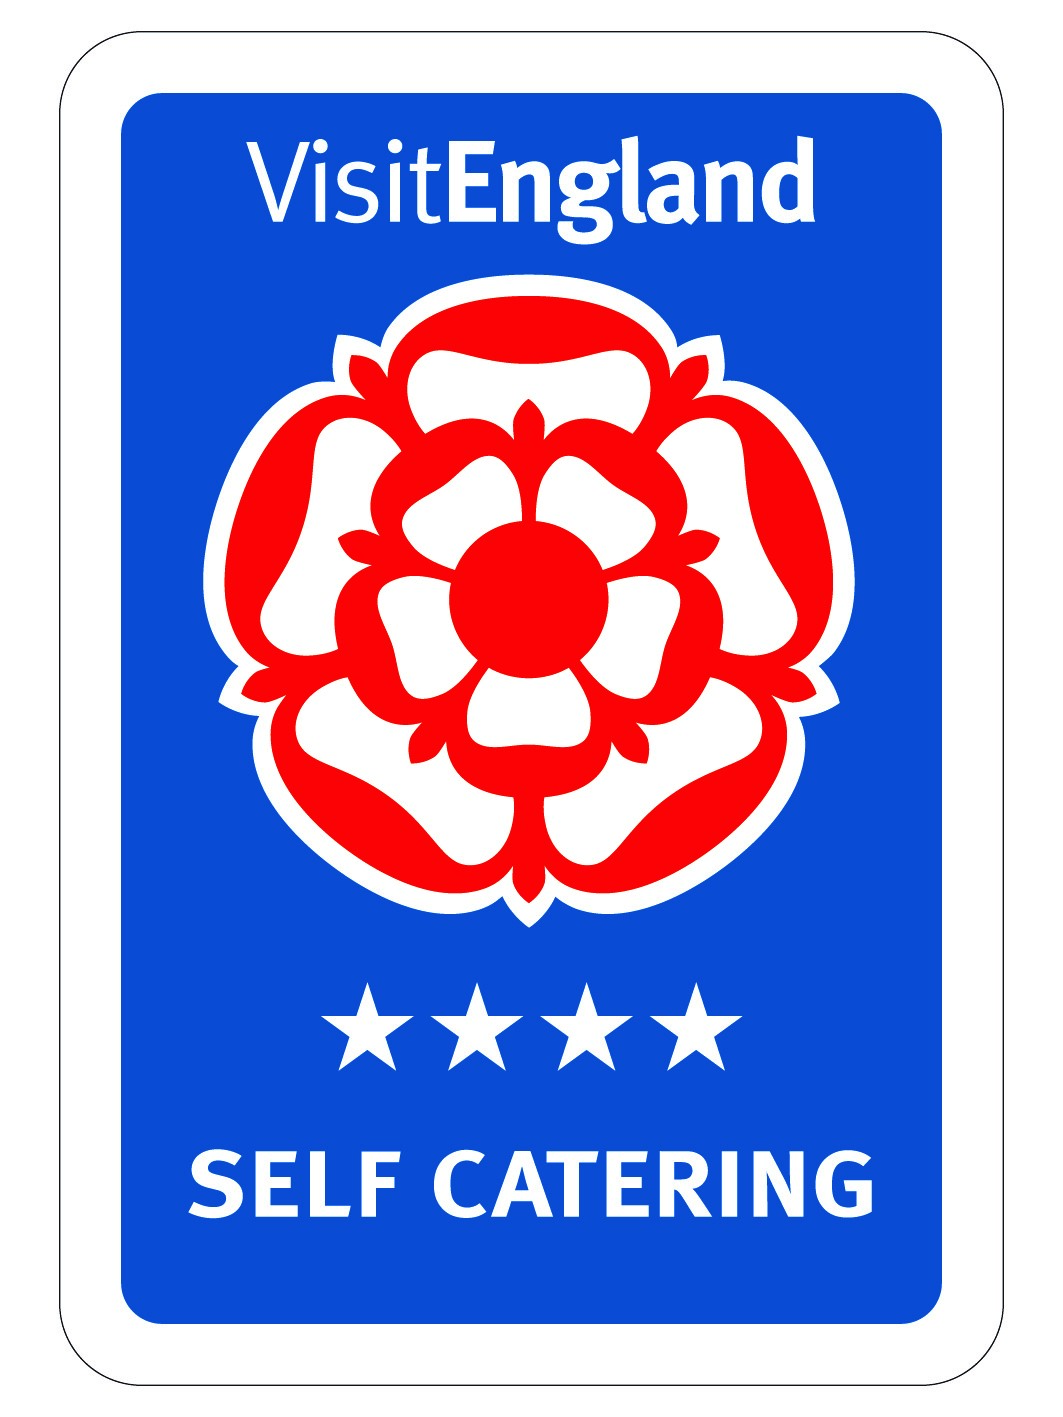 Visit England 4 star rating